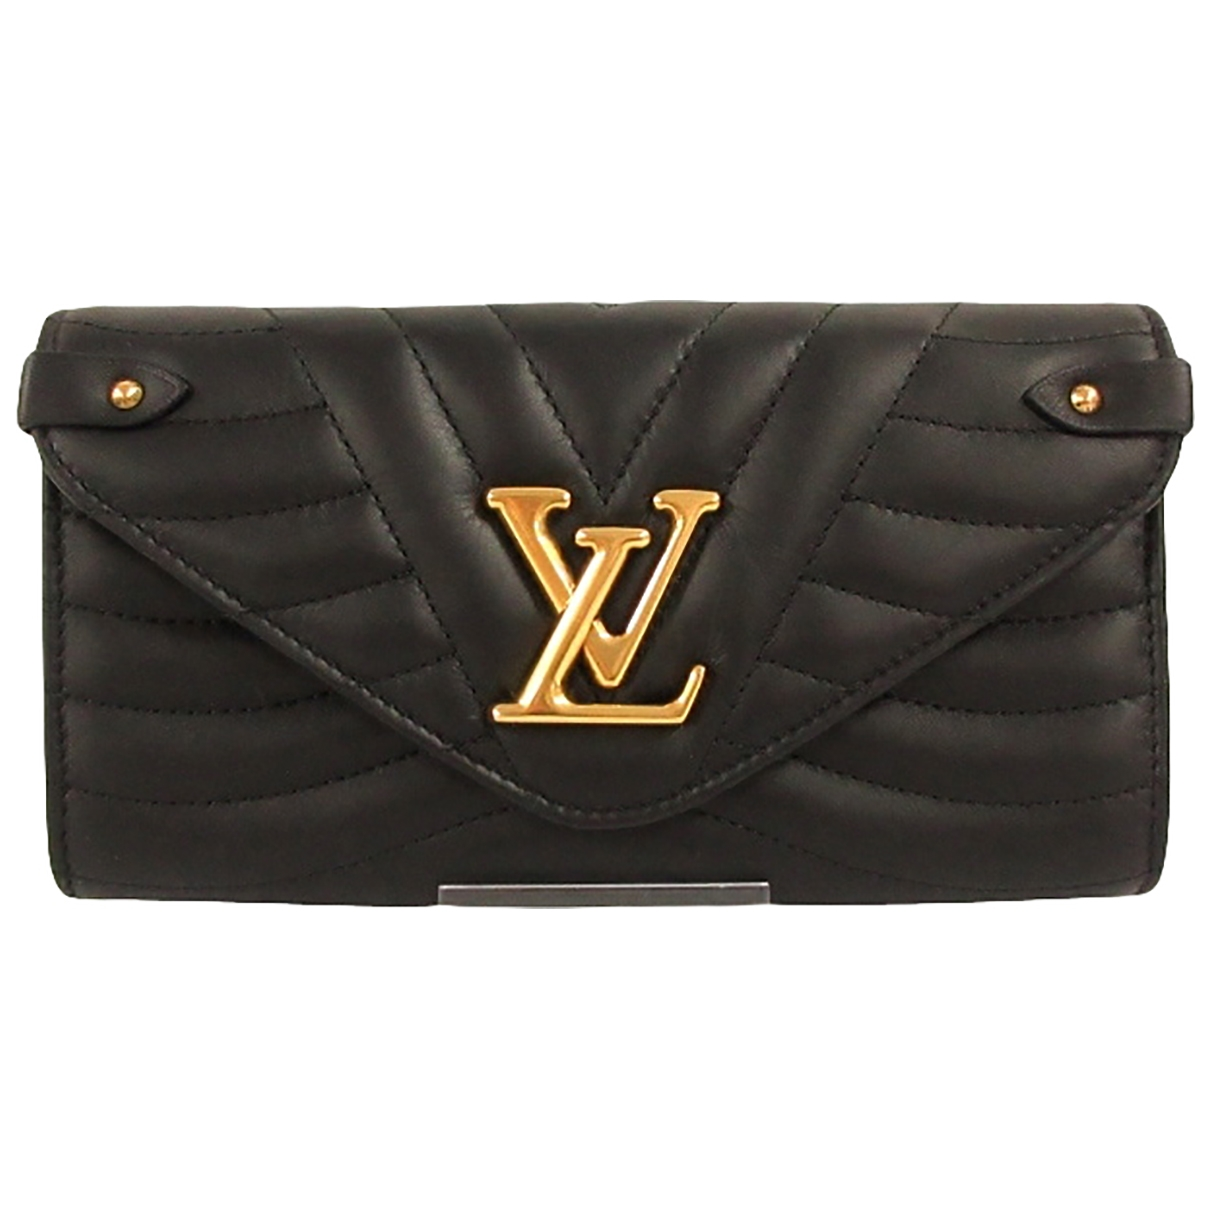 Cartera NewWave de Cuero Louis Vuitton